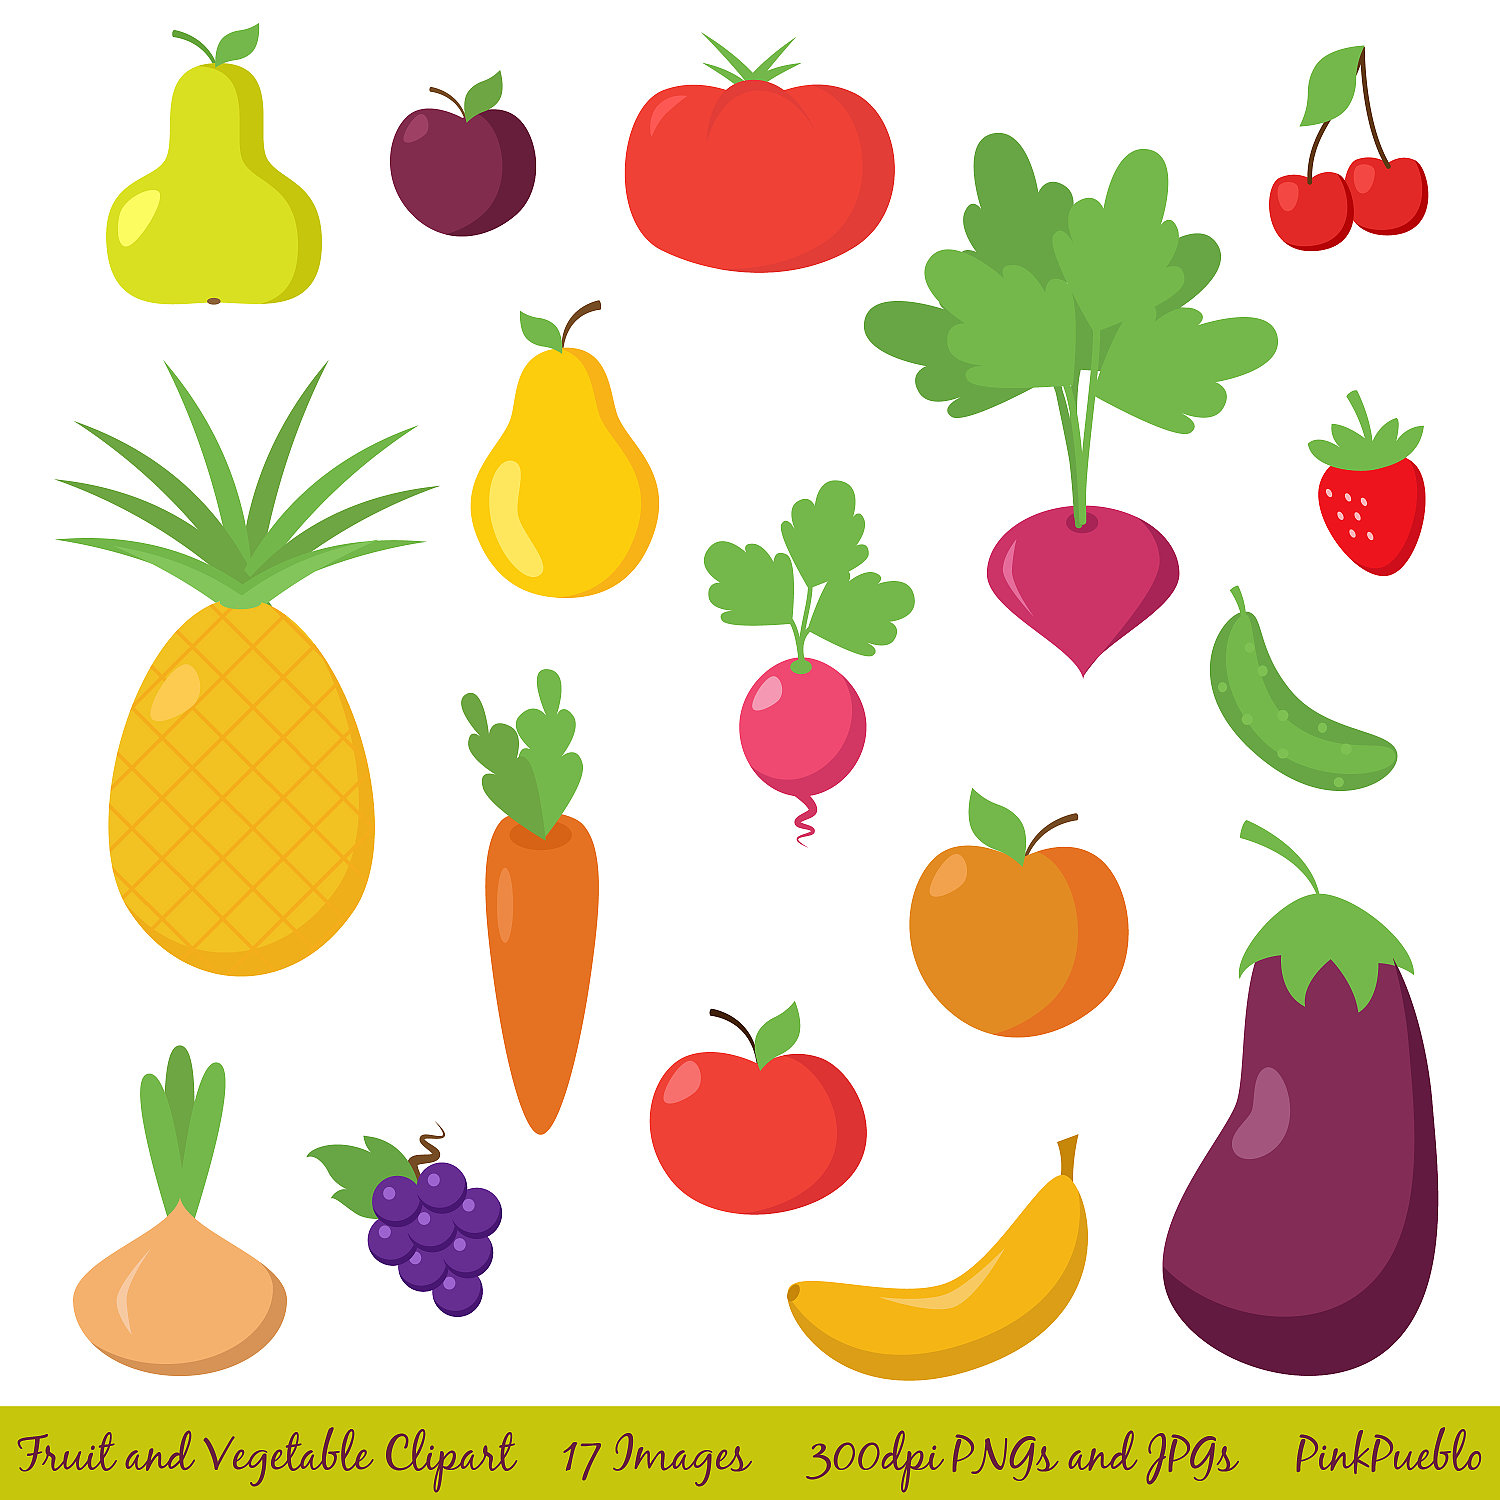 Fruit and Vegetable Clipart Clip Art, Fruit Clipart Clip Art, Vegetable Clipart Clip Art - Commercial and Personal Use